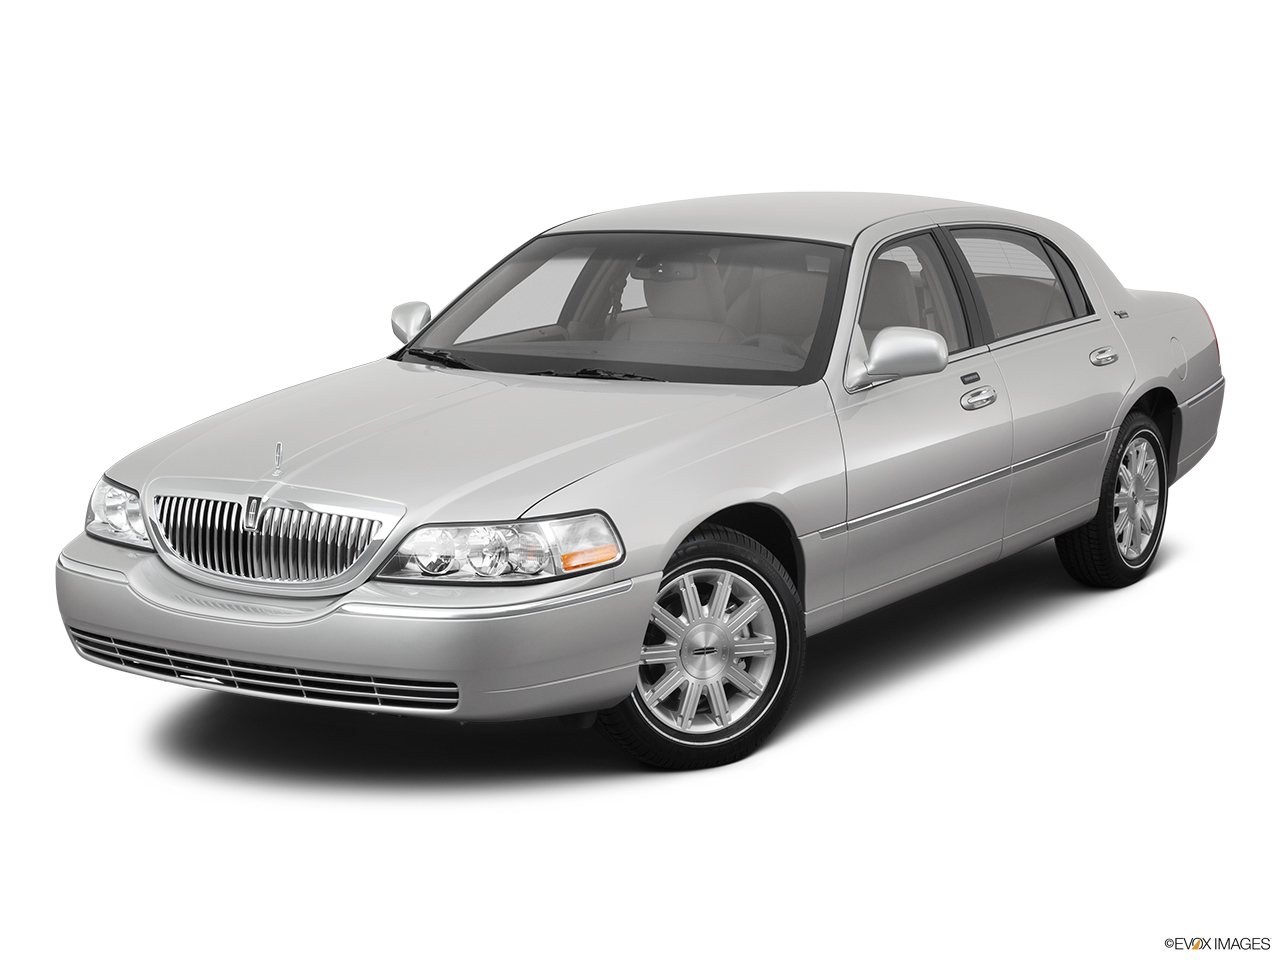 2011 Lincoln Town Car Signature Limited Front angle view.